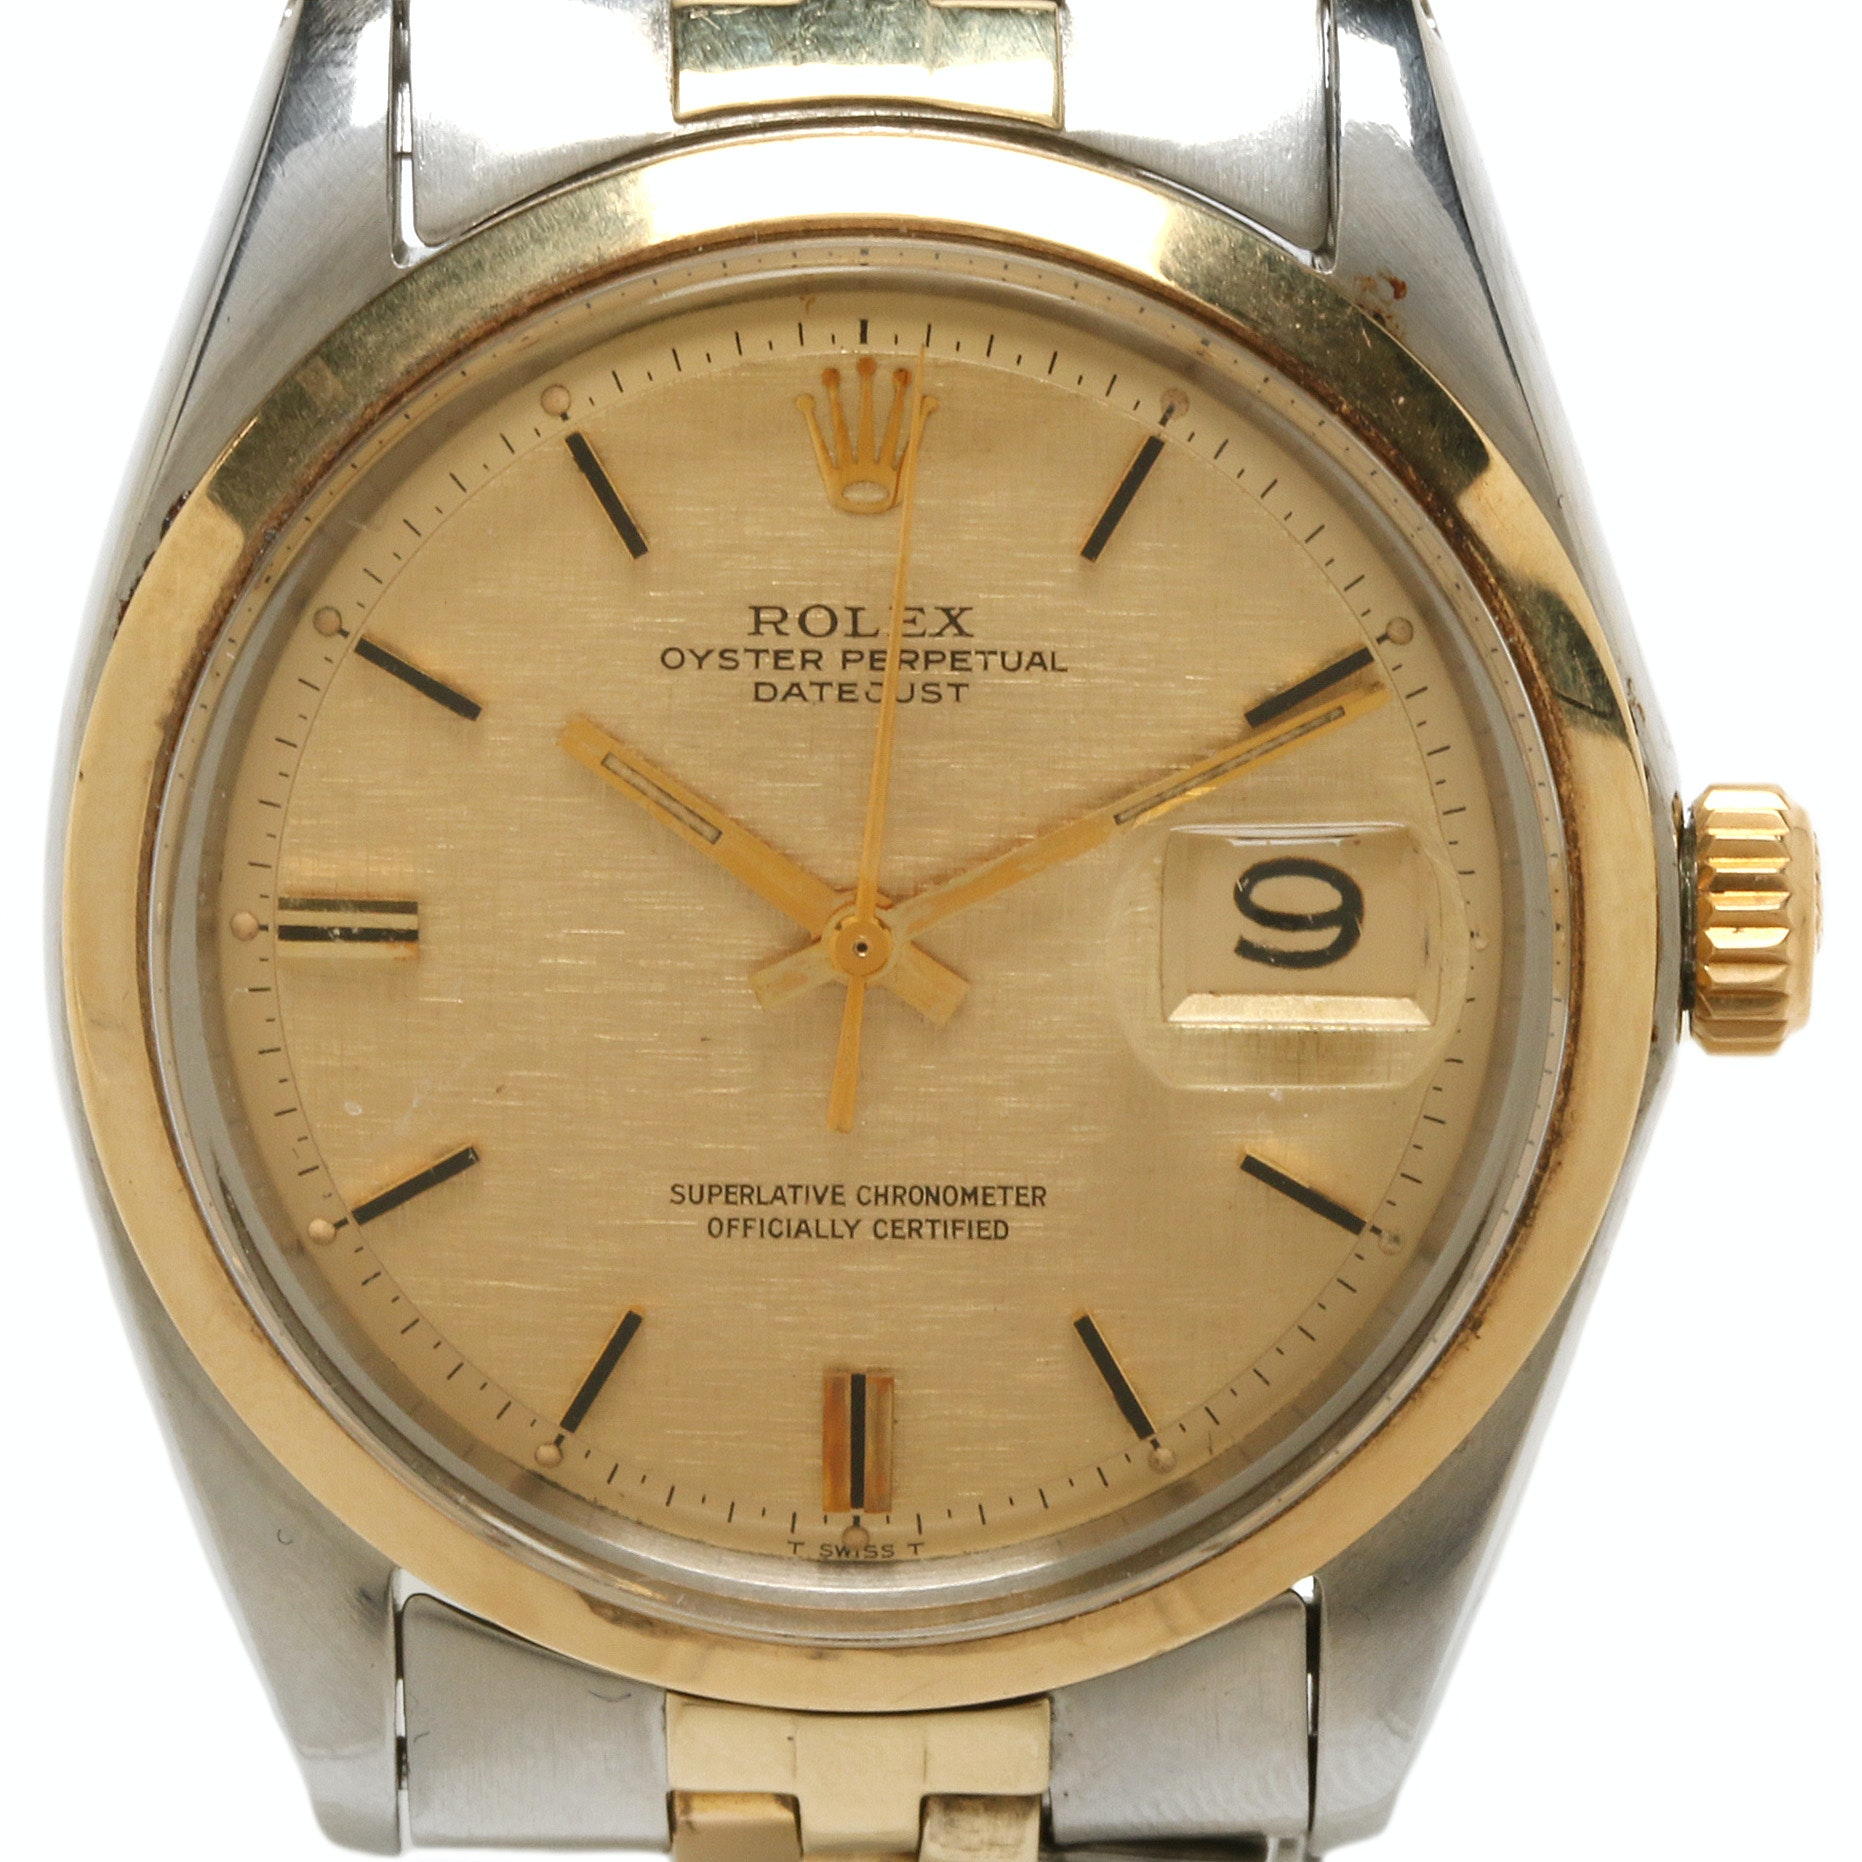 Rolex Datejust Stainless Steel and 14K Yellow Gold Wristwatch, 1968